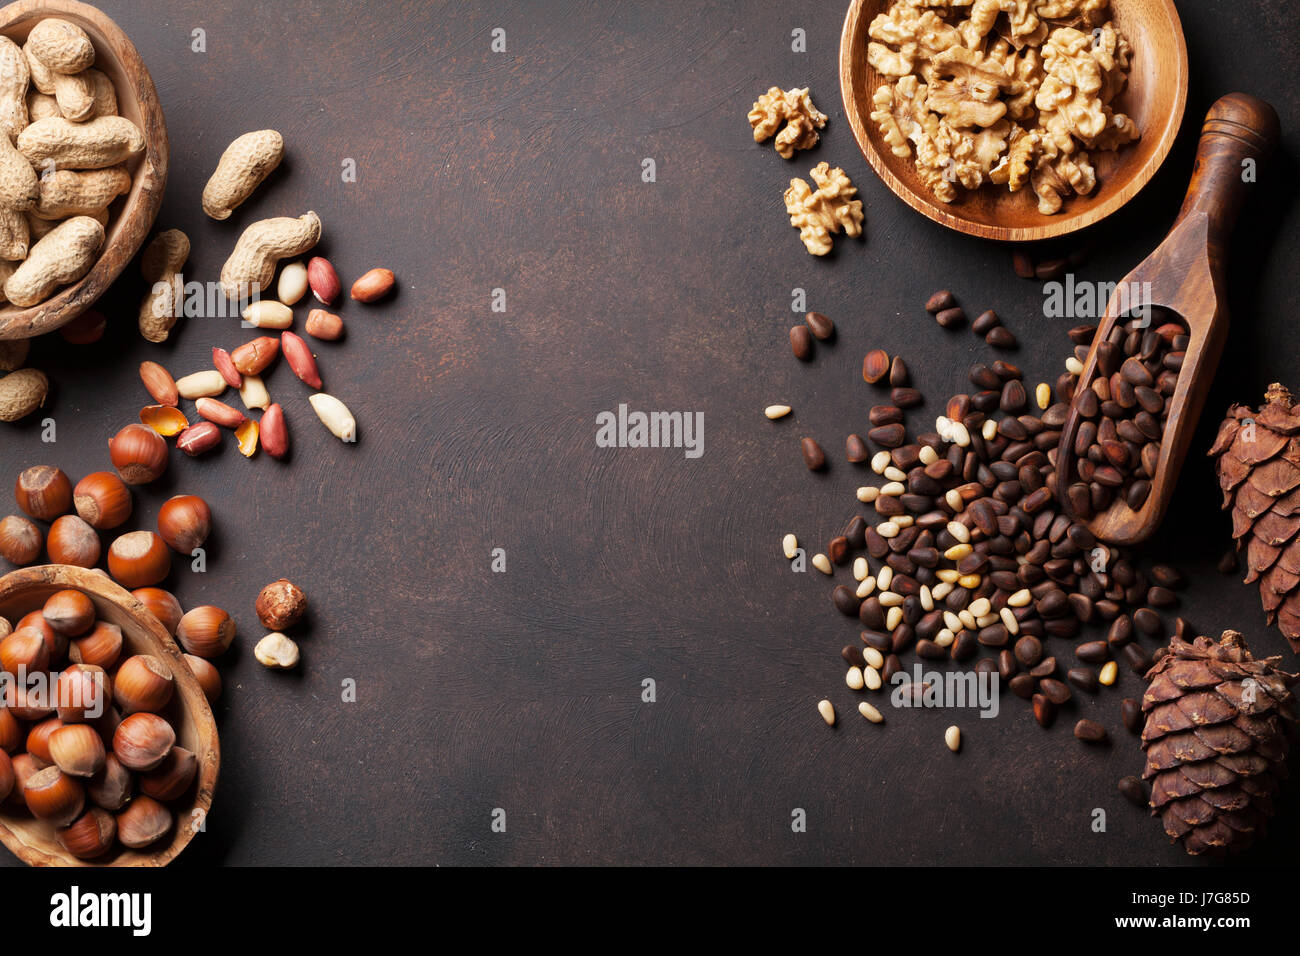 Various nuts on stone table. Top view with copy space - Stock Image